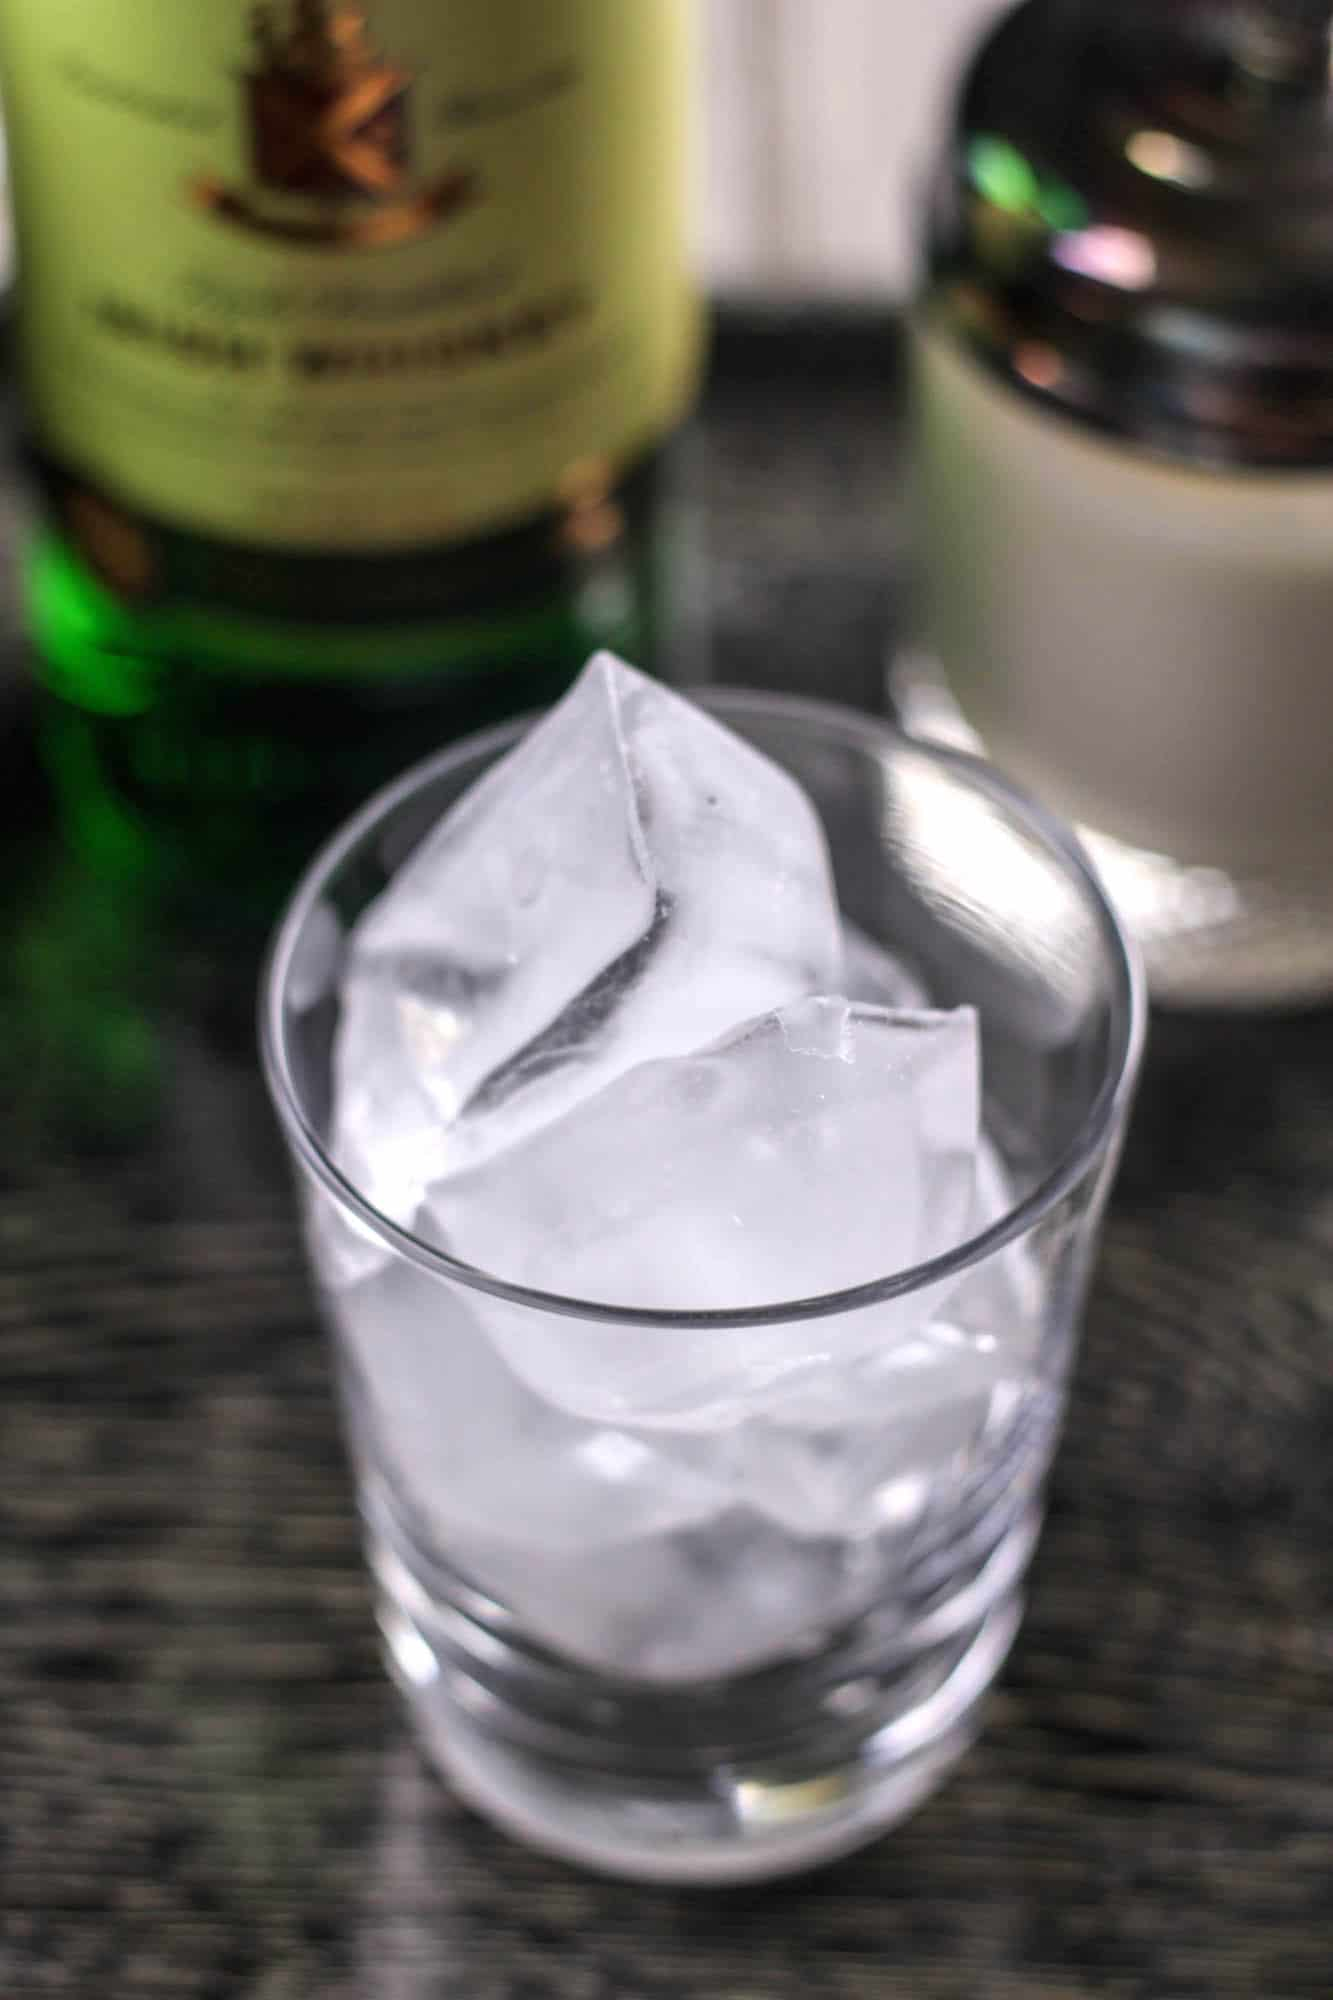 Empty whiskey glass with ice cubes